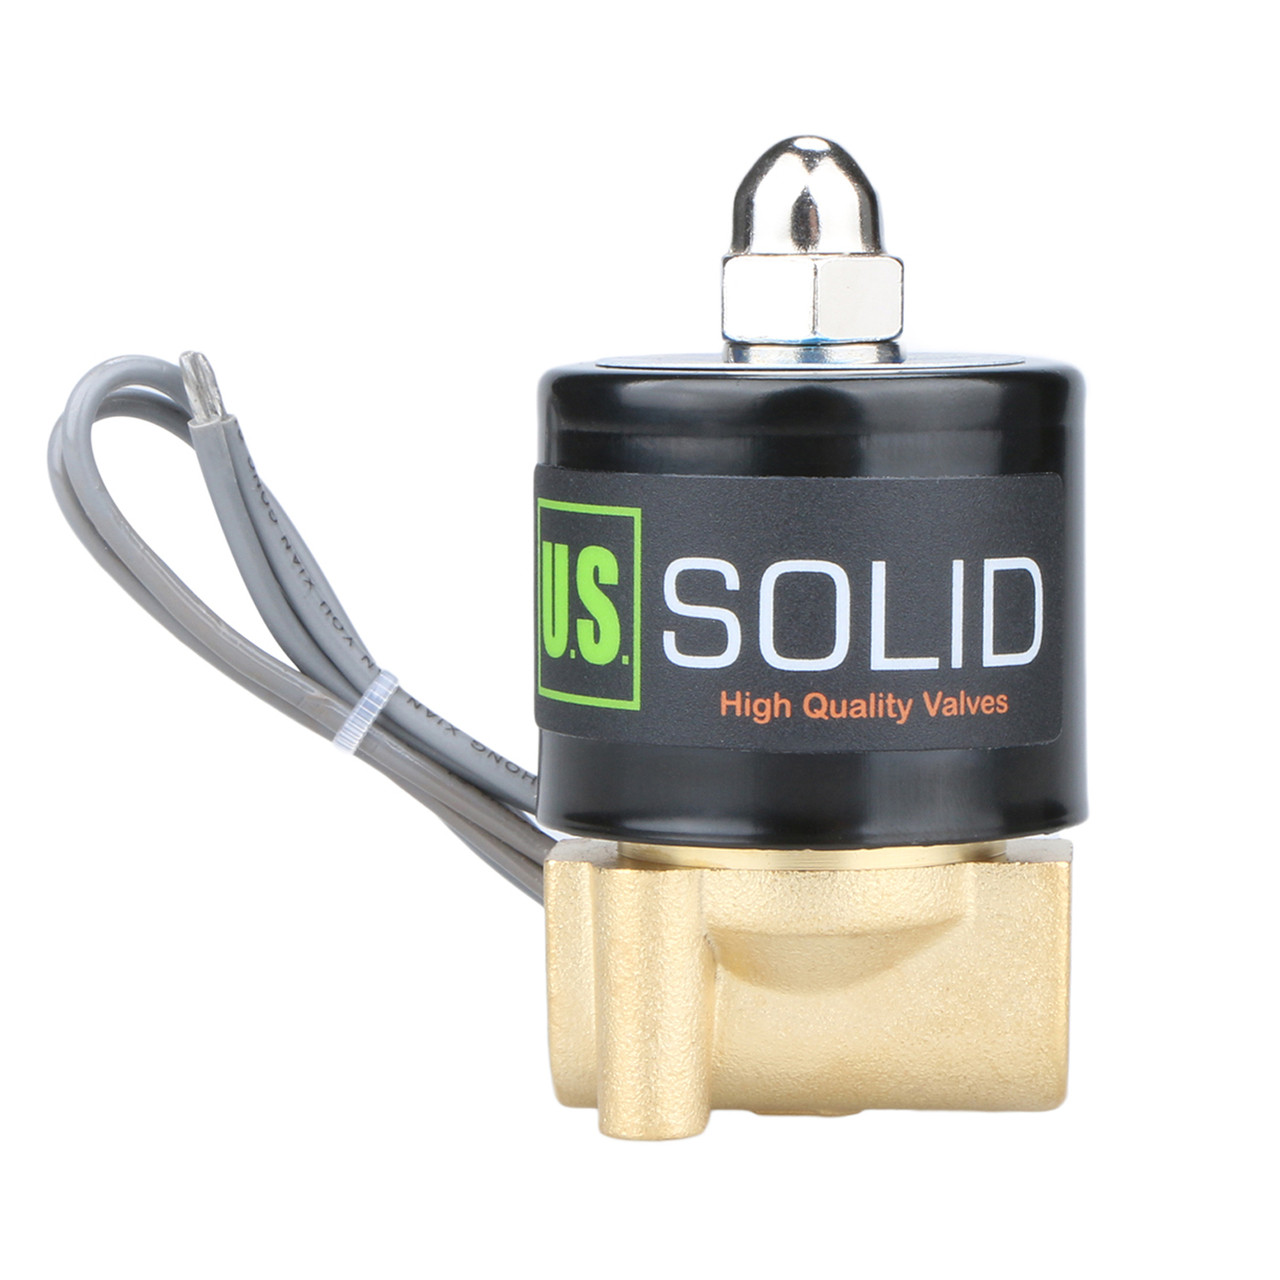 "USSOLID Electric Solenoid Valve- 1/8"" 24V DC Solenoid Valve Brass Body Normally Closed, VITON SEAL"